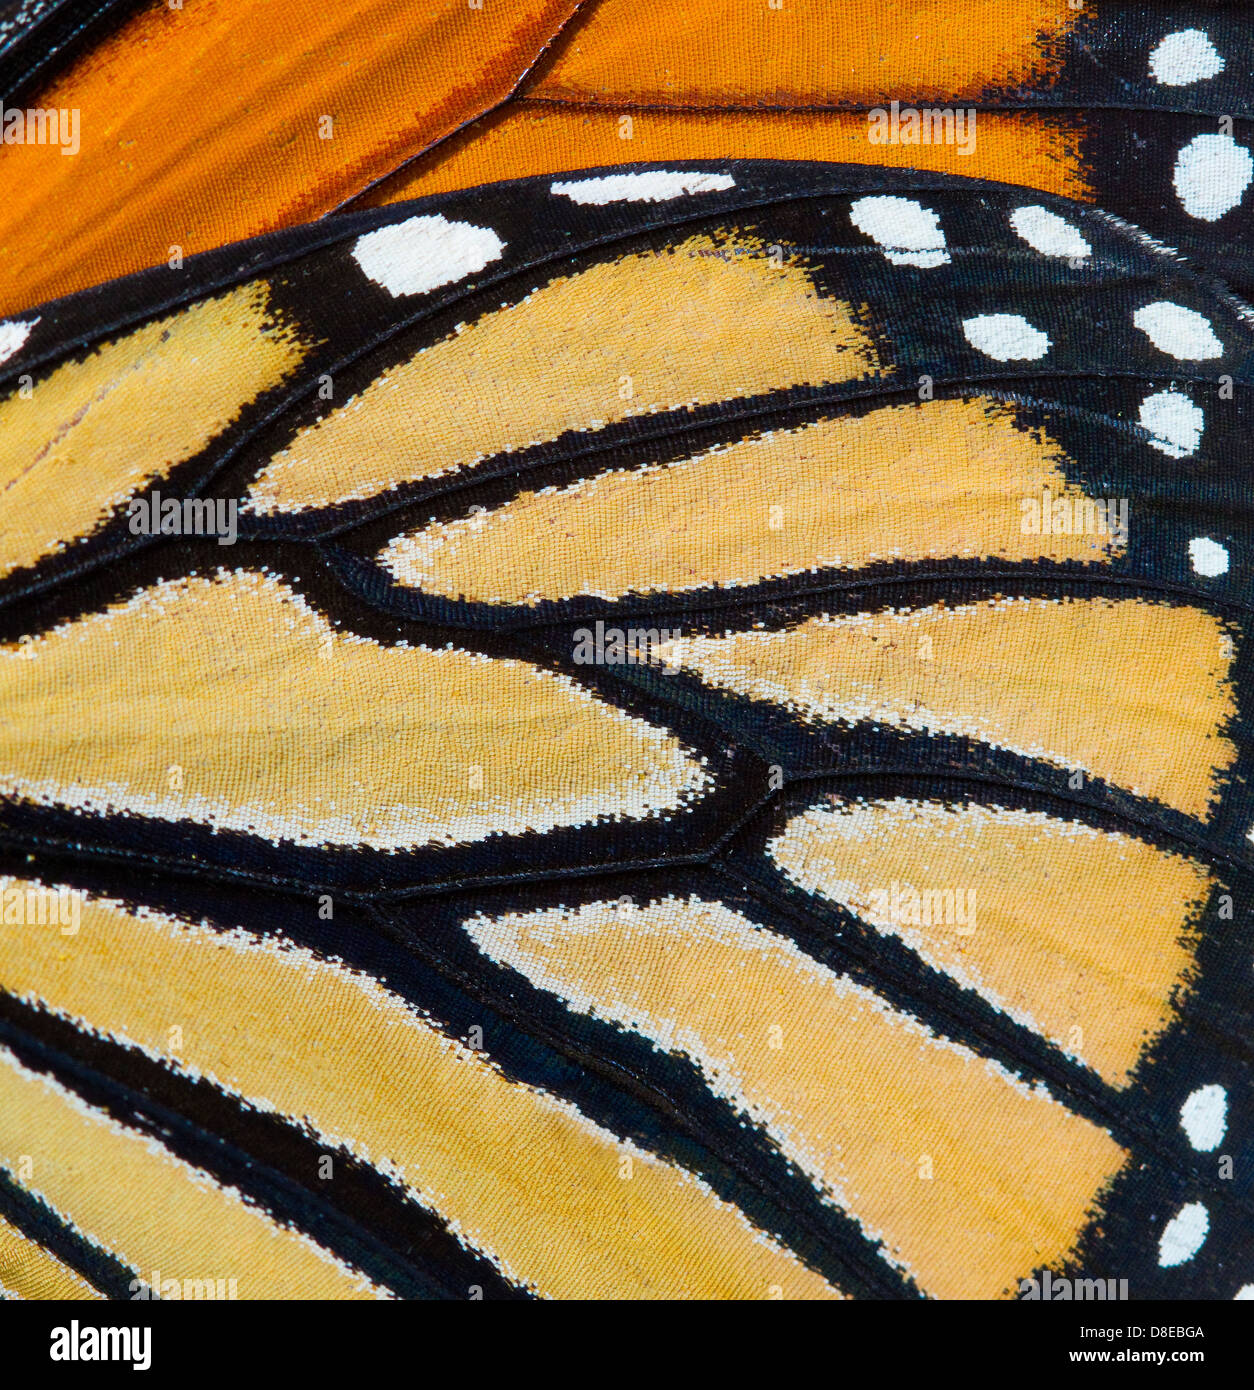 MONARCH BUTTERFLY (Danaus plexippus) wing detail, Florida, USA. - Stock Image